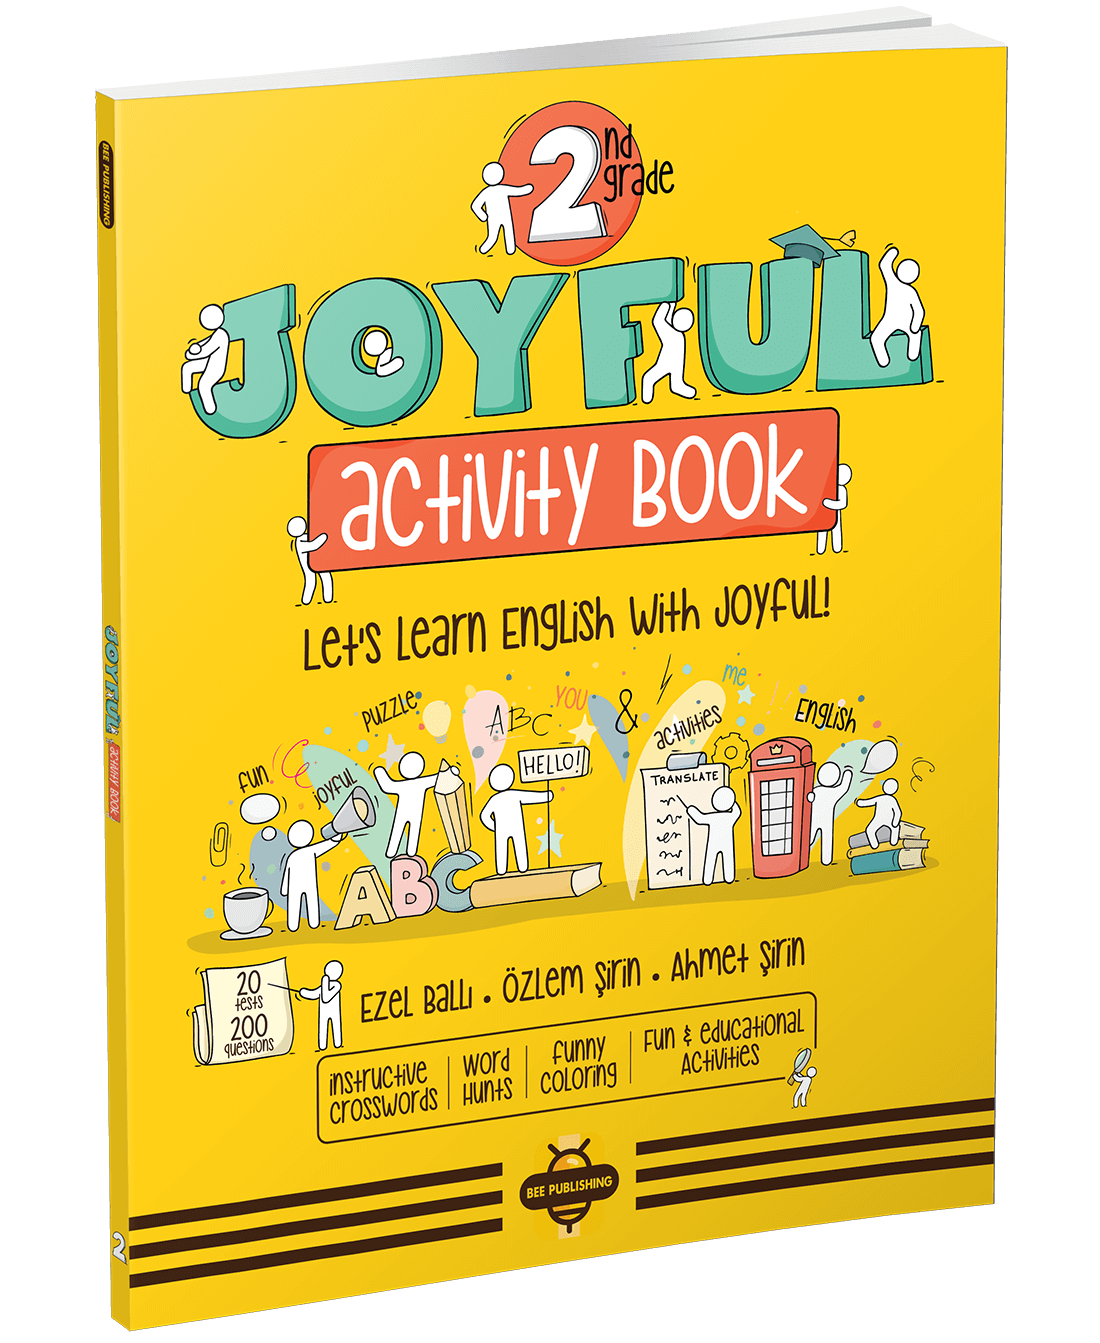 Joyful Activity Book 2. Sınıf